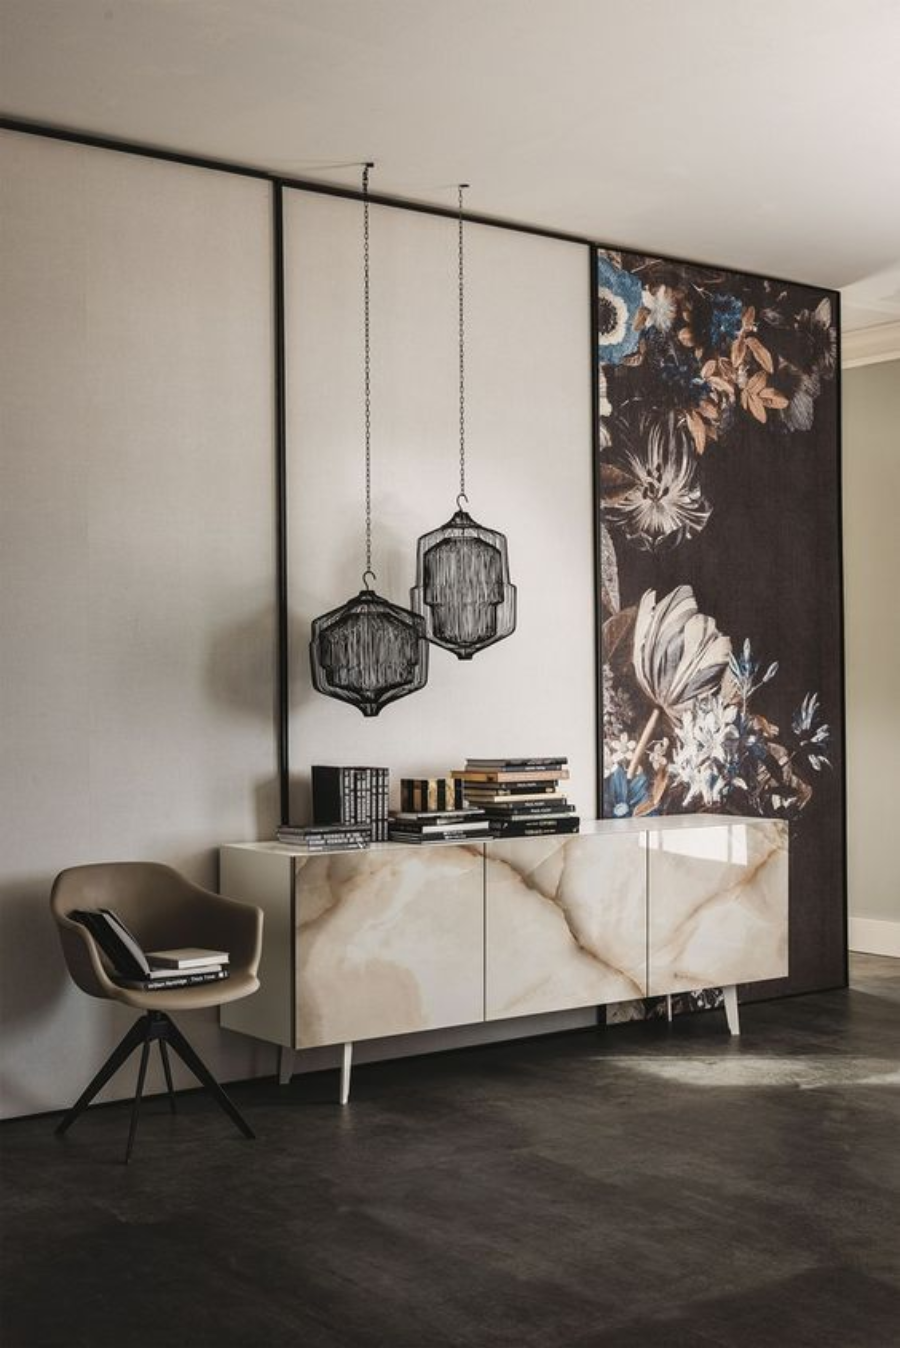 exclusive sideboards 10 Exclusive Sideboards That You Need On Your Next Interior Design Project canva photo editor 51